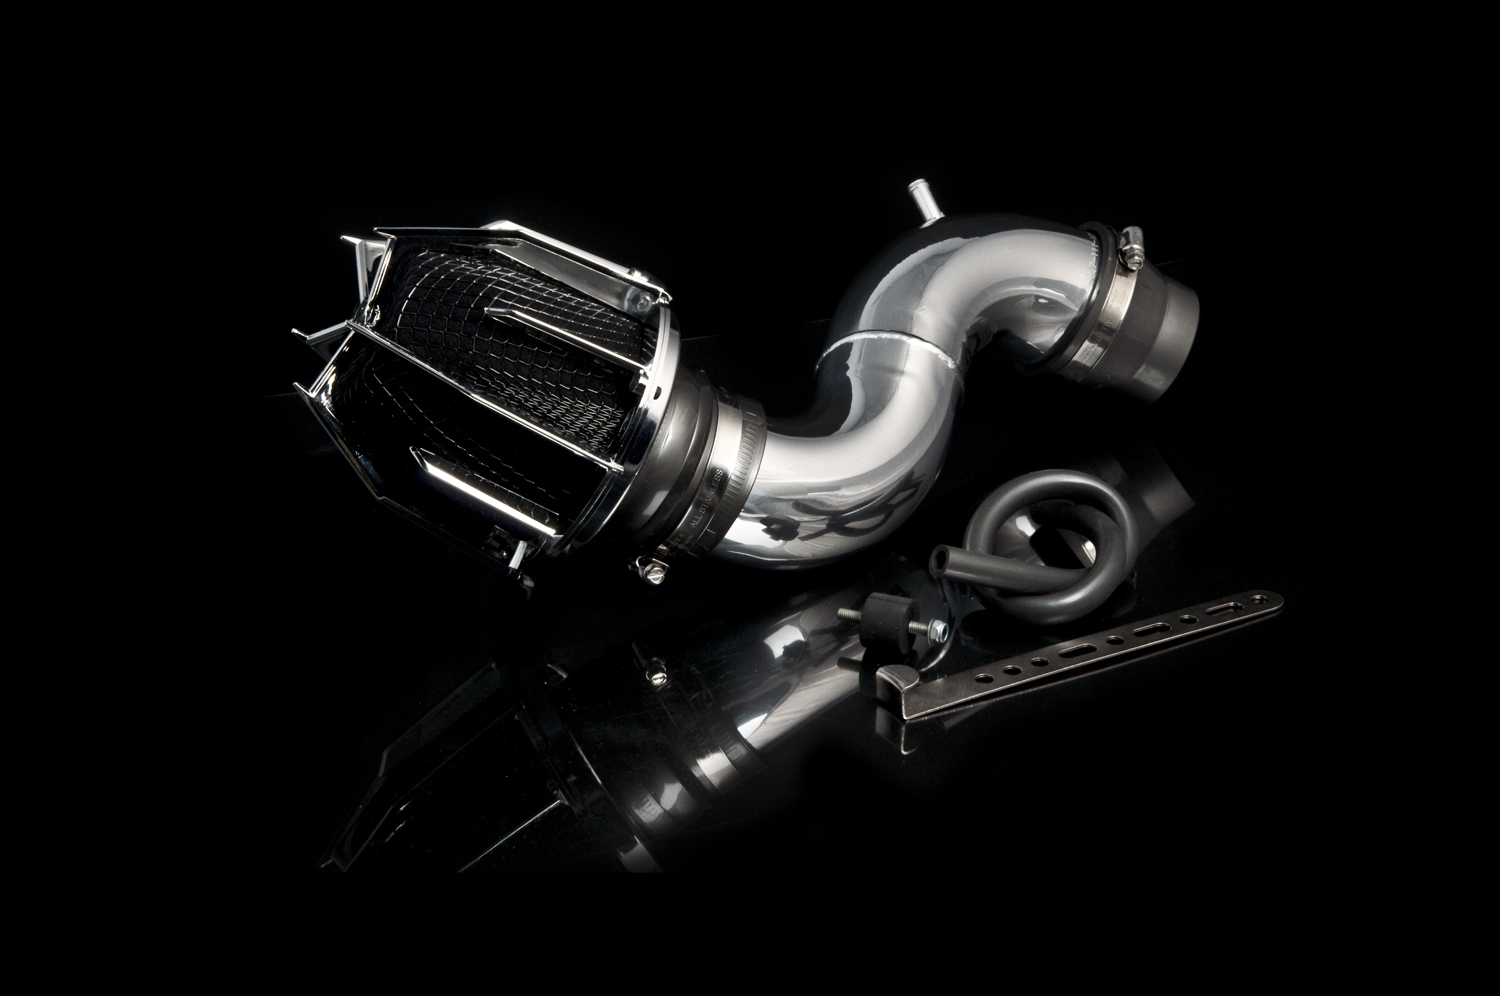 Chevrolet Malibu 2.4l 1998-2003 Weapon-R Dragon Air Intake